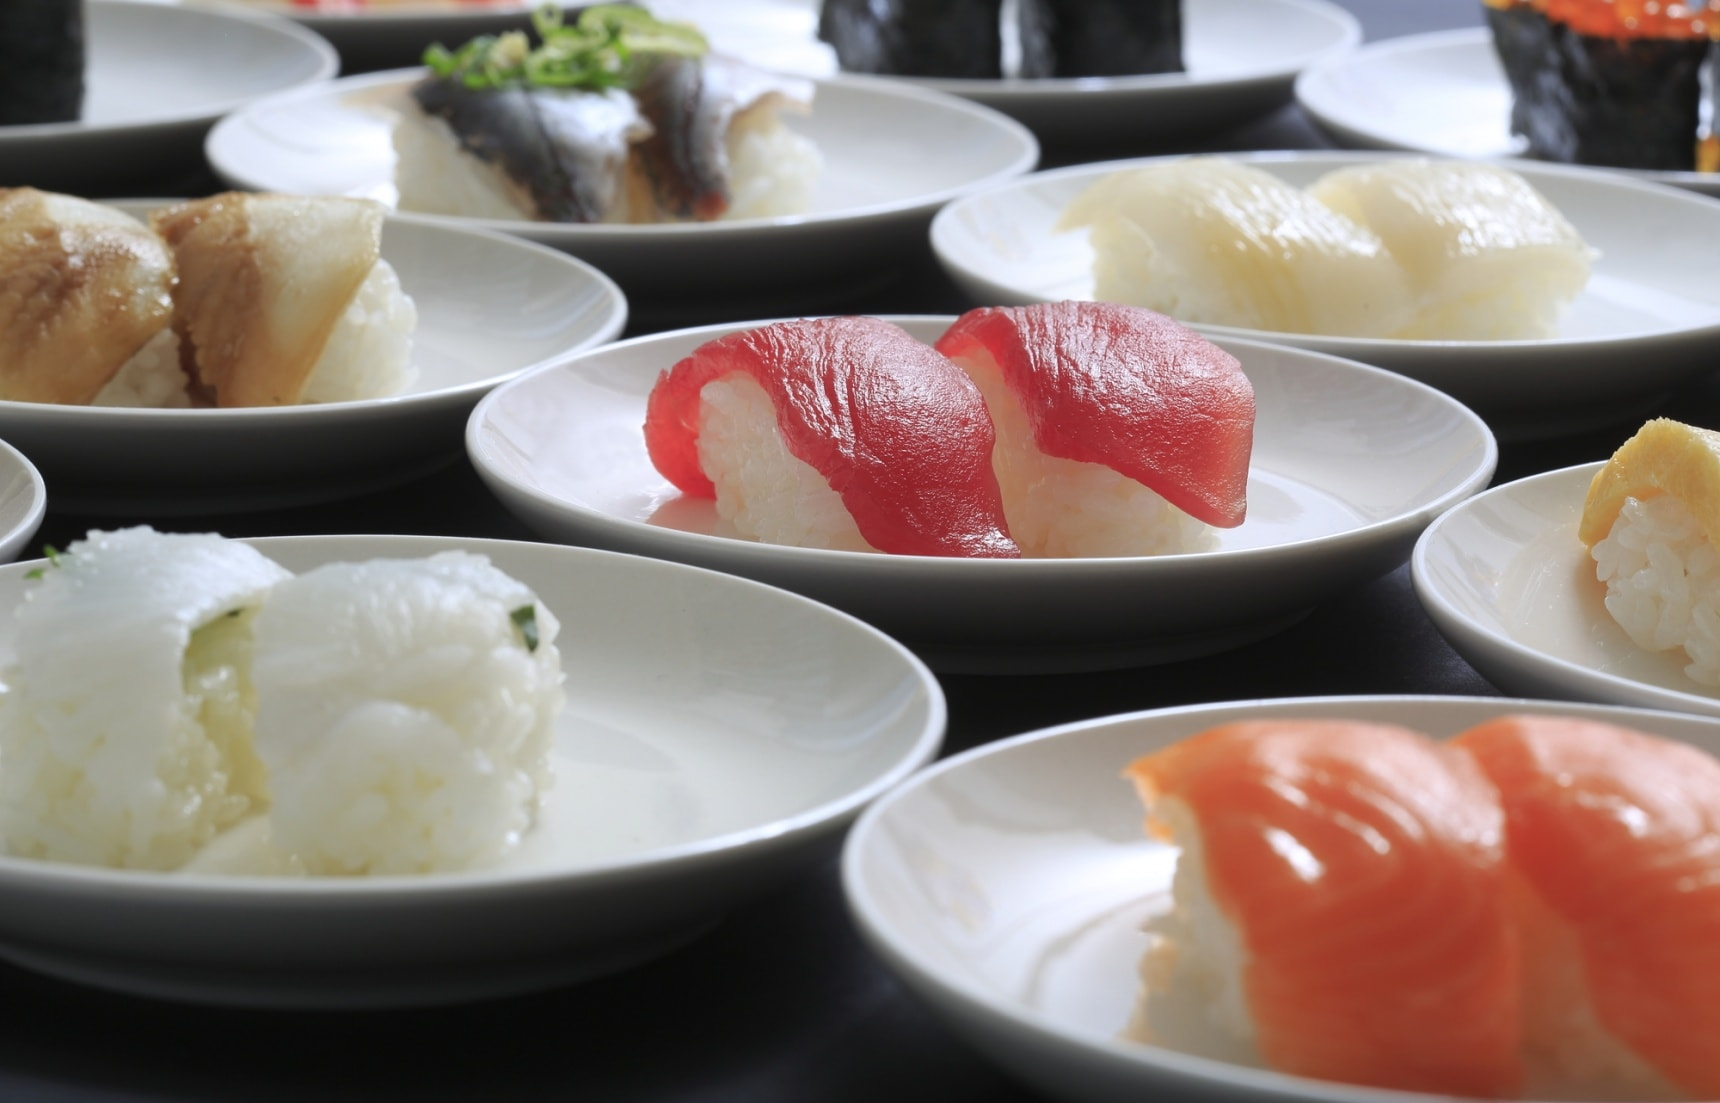 Trade YouTube Videos for All-You-Can-Eat Sushi